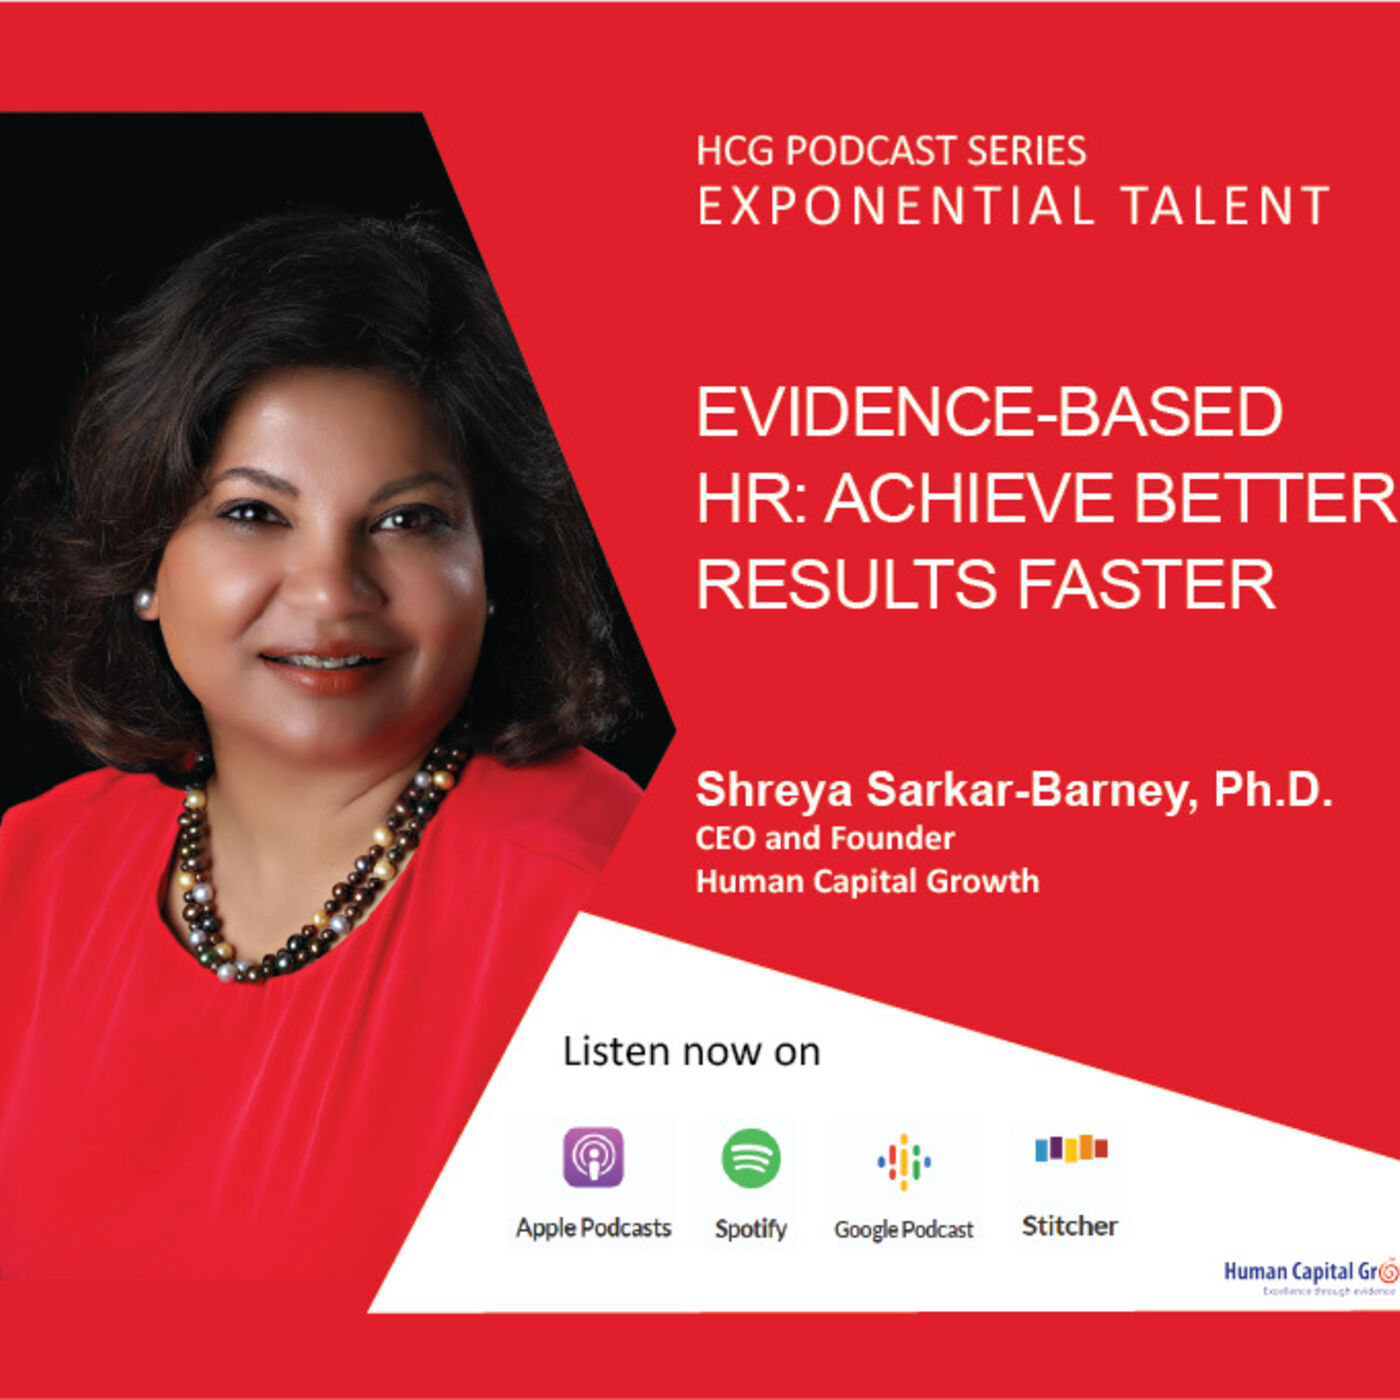 Evidence-based HR: Achieve Better Results Faster